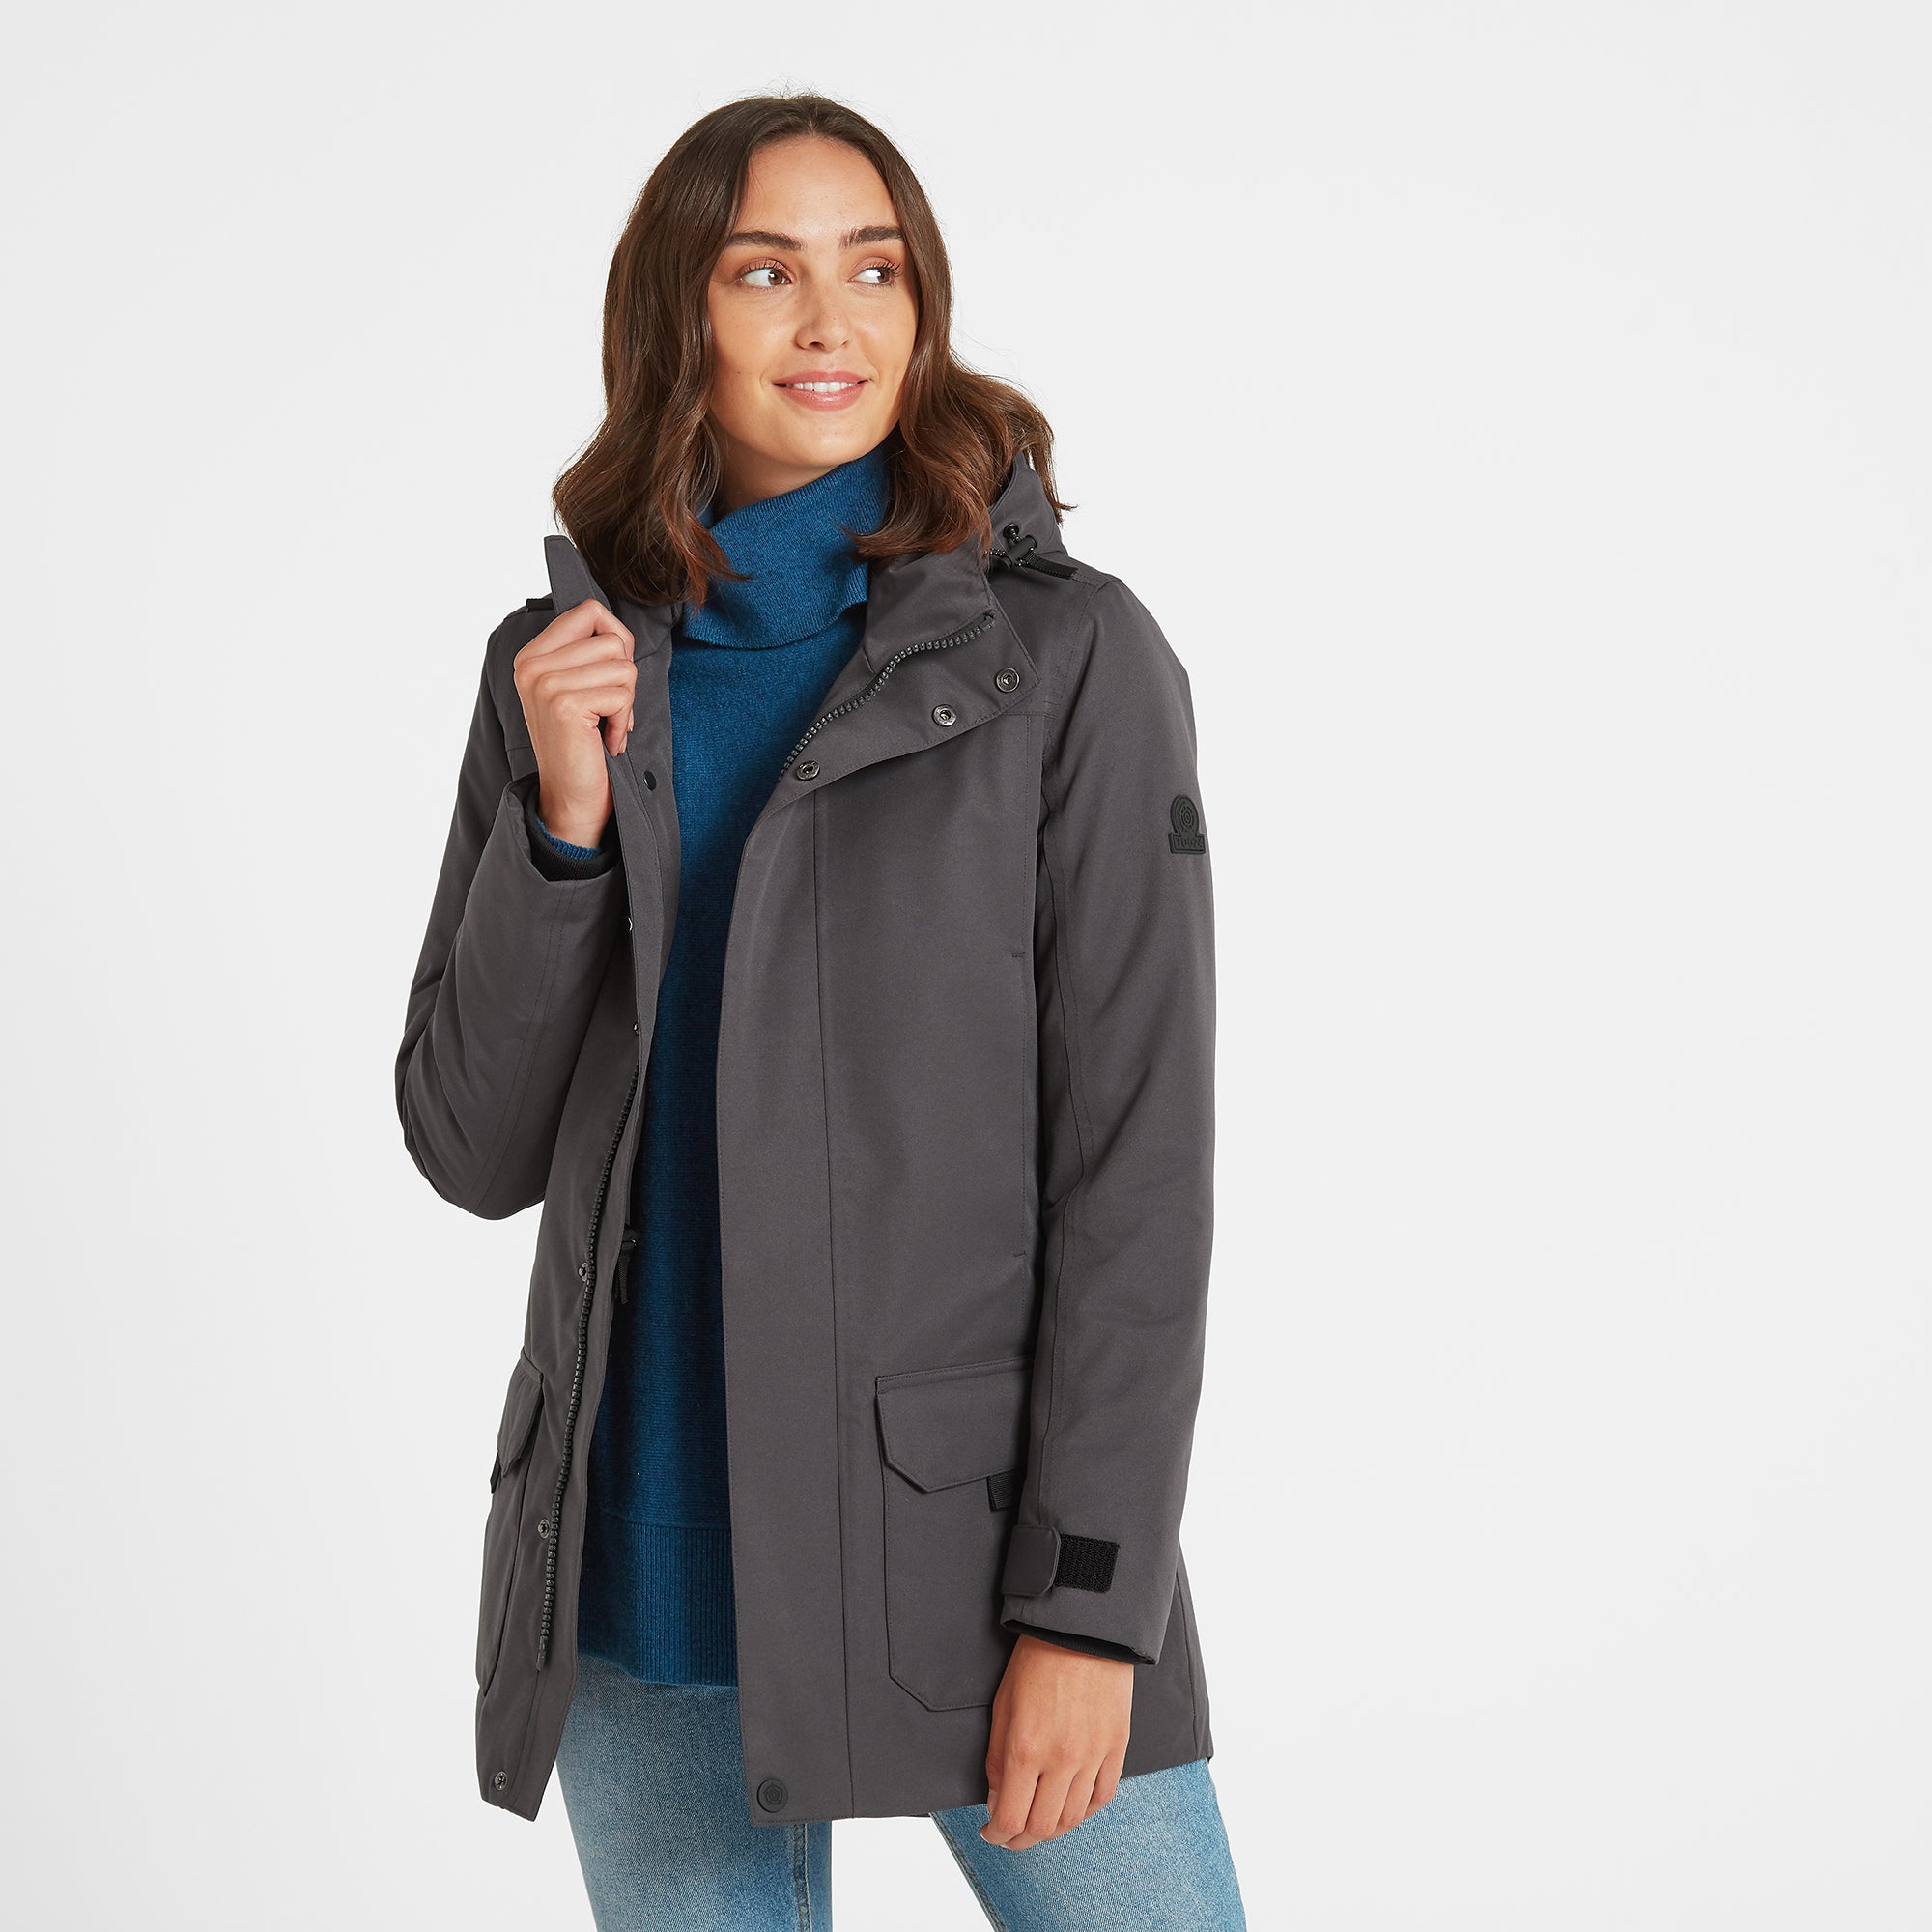 Dight Womens Waterproof Parka - Coal Grey